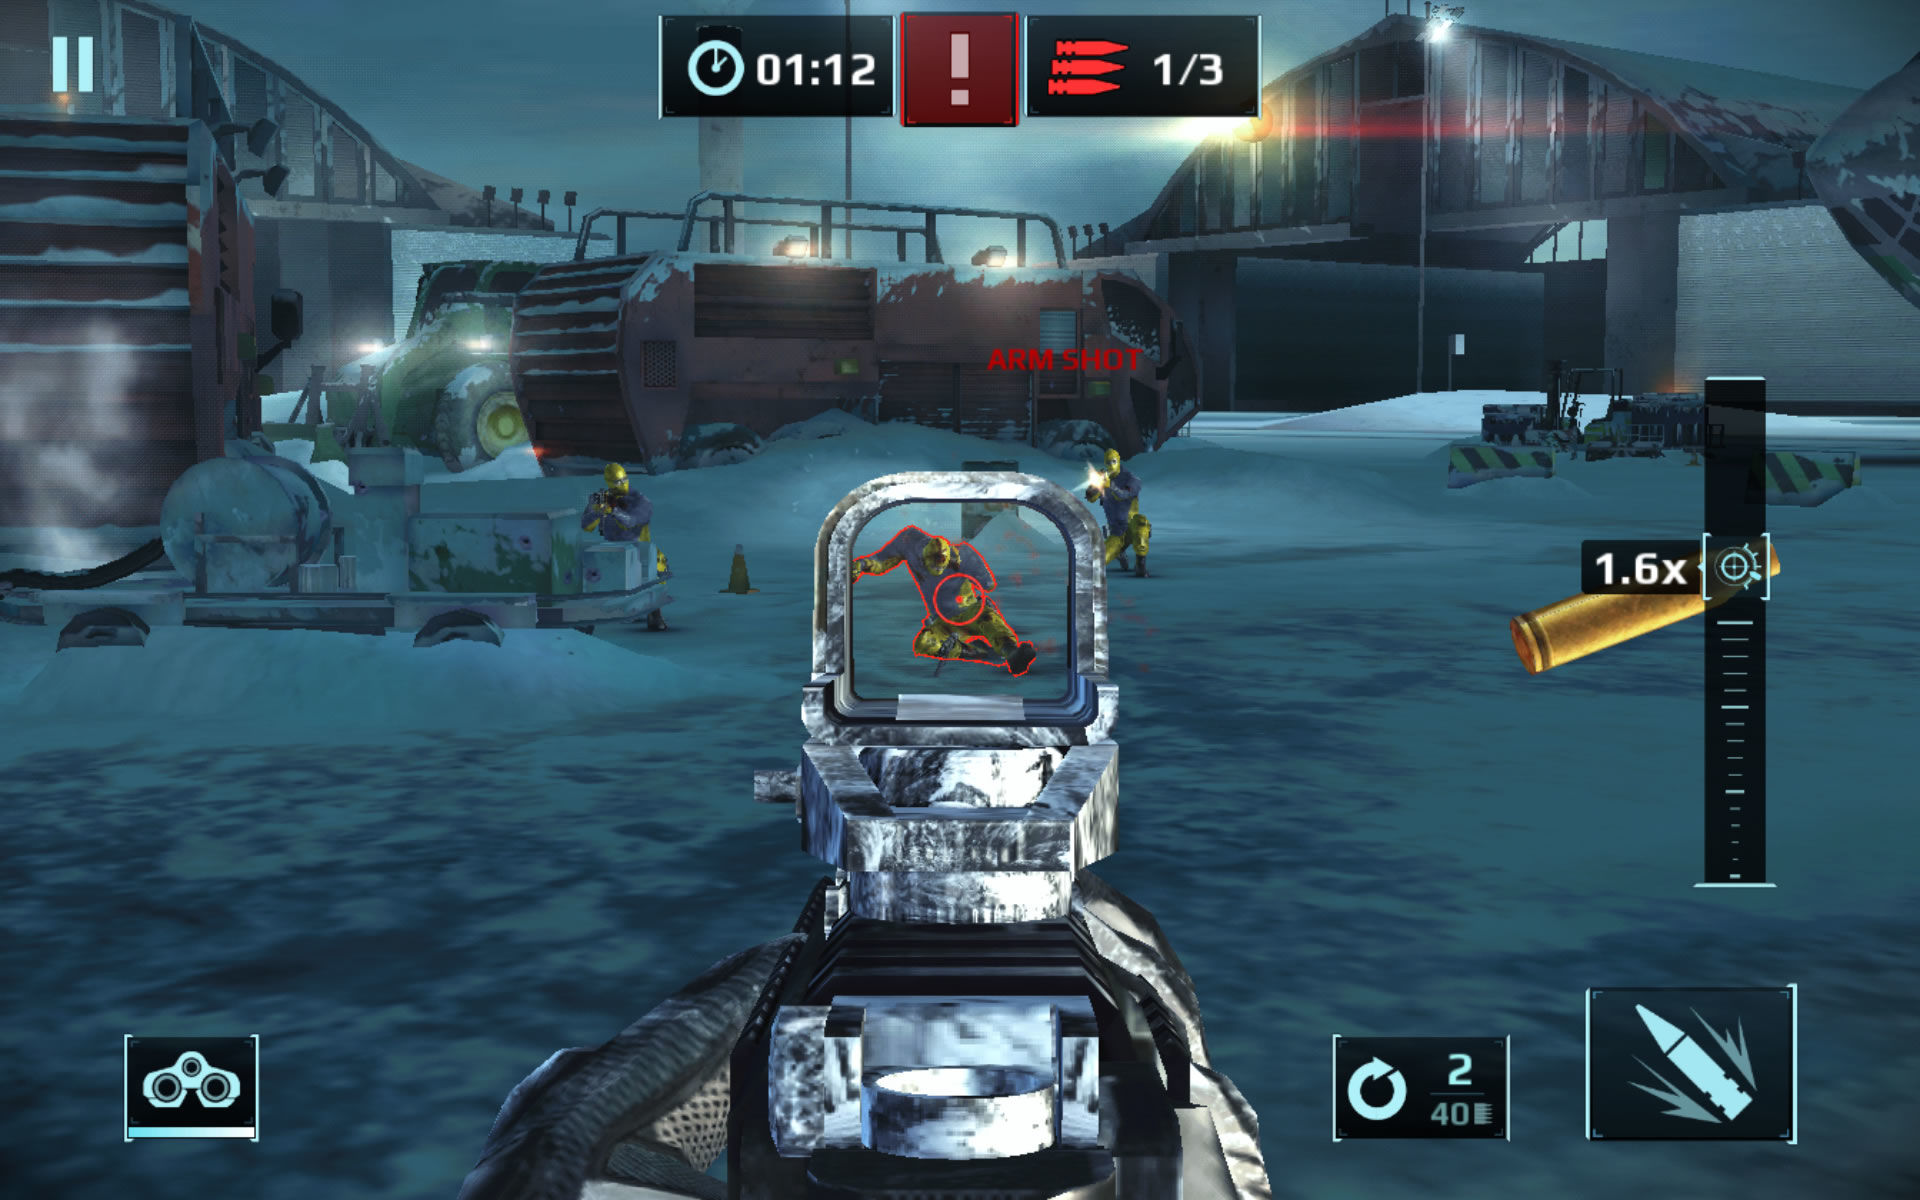 Sniper Fury Screenshots for Android - MobyGames